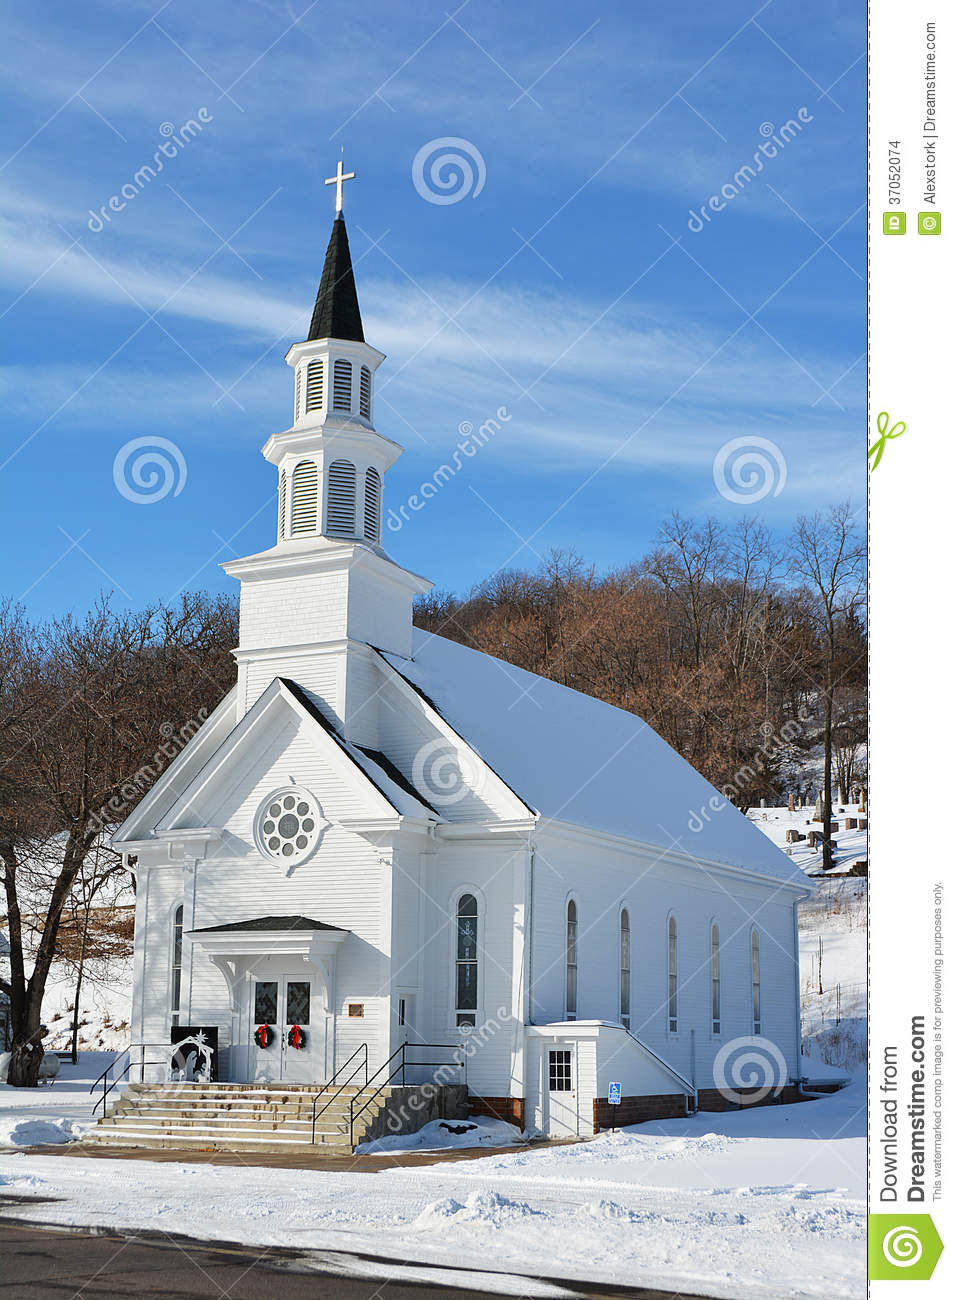 Download Old Country Church 2 Stock Photo Image Of Blue Cross